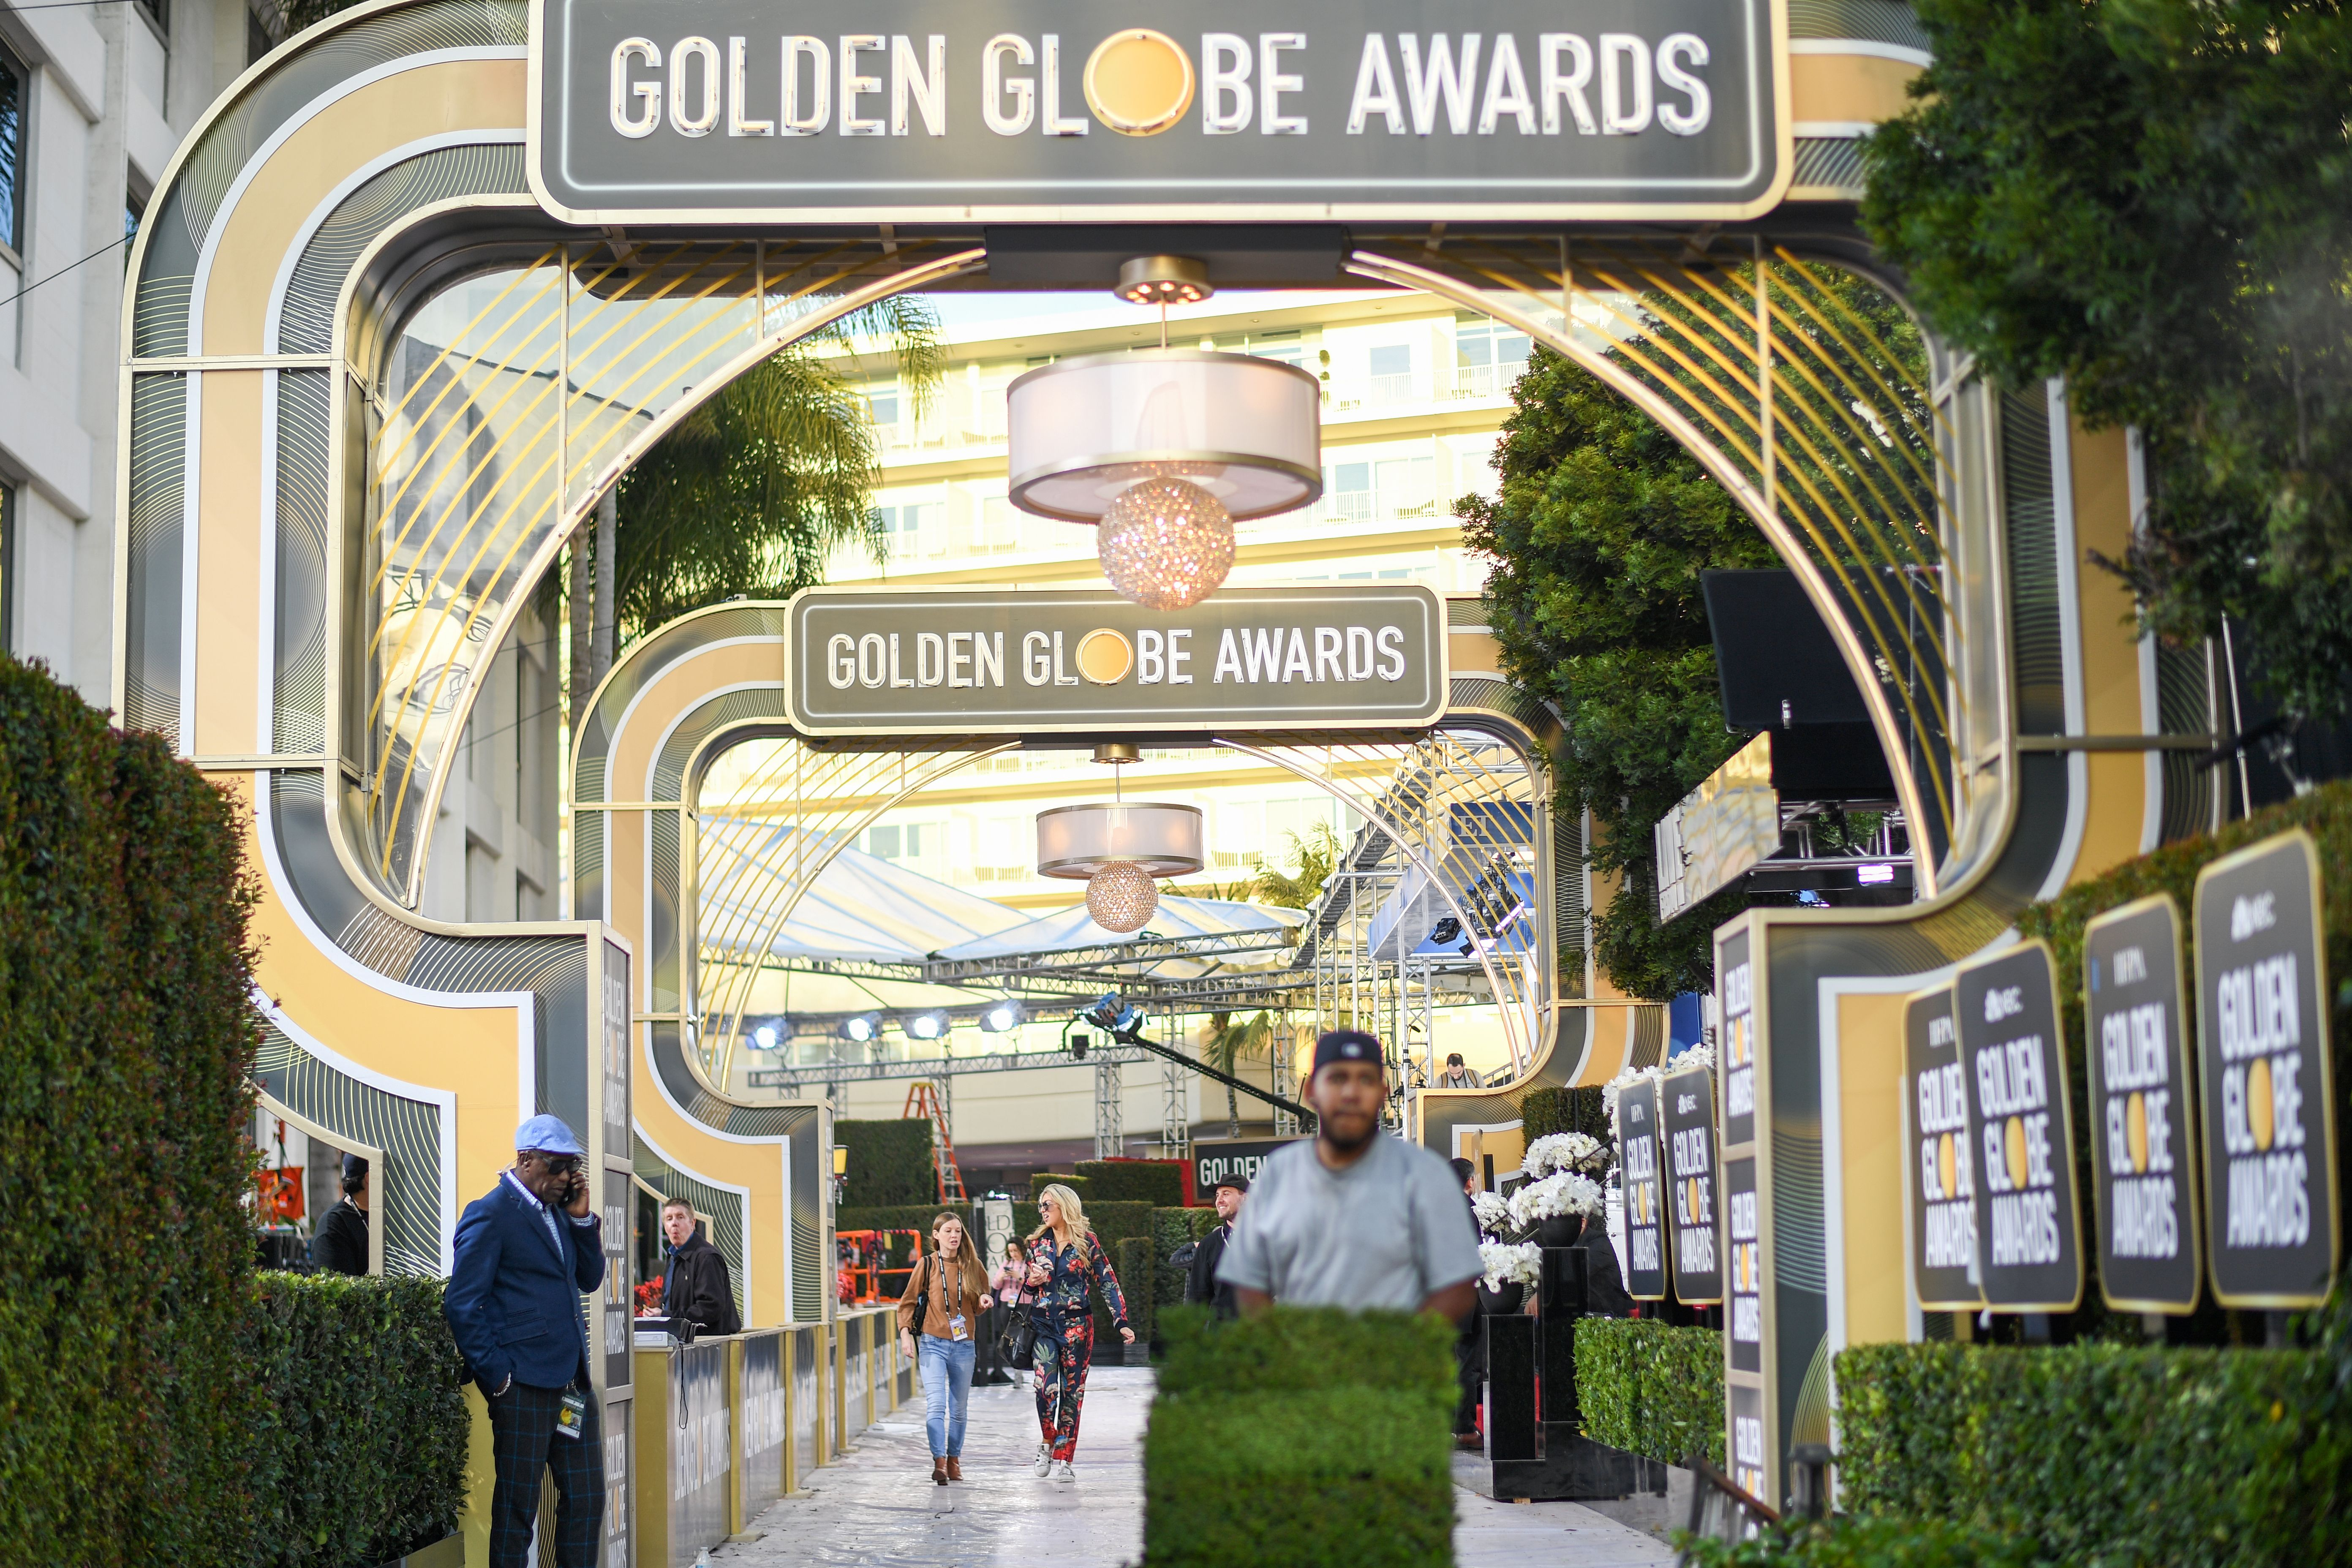 General view of the red carpet set up at the Golden Globes 2020 at The Beverly Hilton, in Beverly Hills, California, on January 4, 2020.